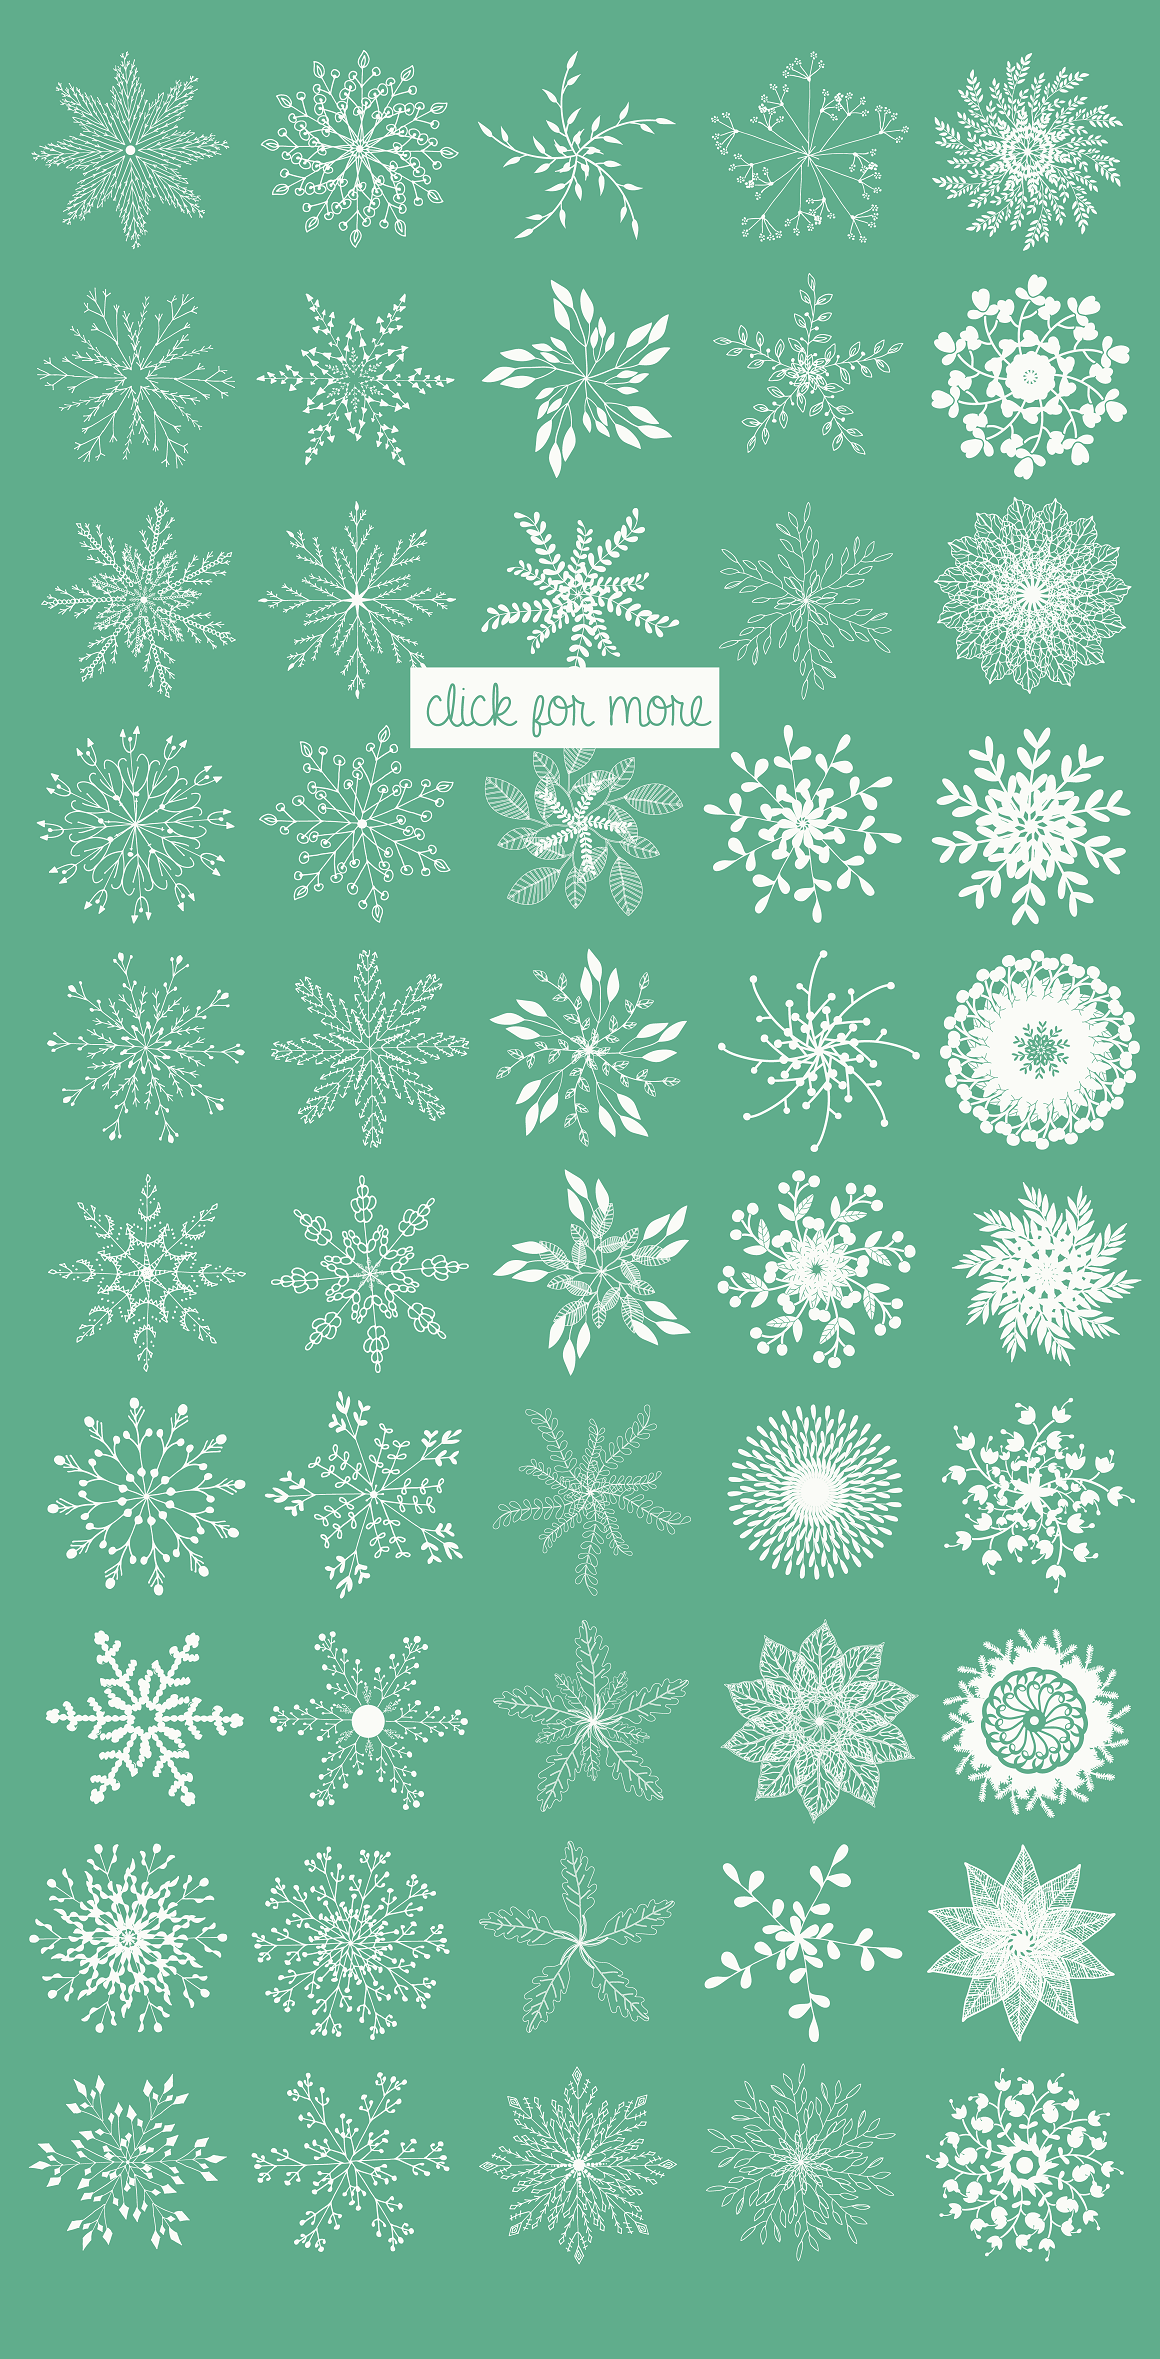 Print on Demand: Christmas Vector Snowflakes Clipart Graphic Illustrations By illuztrate - Image 3